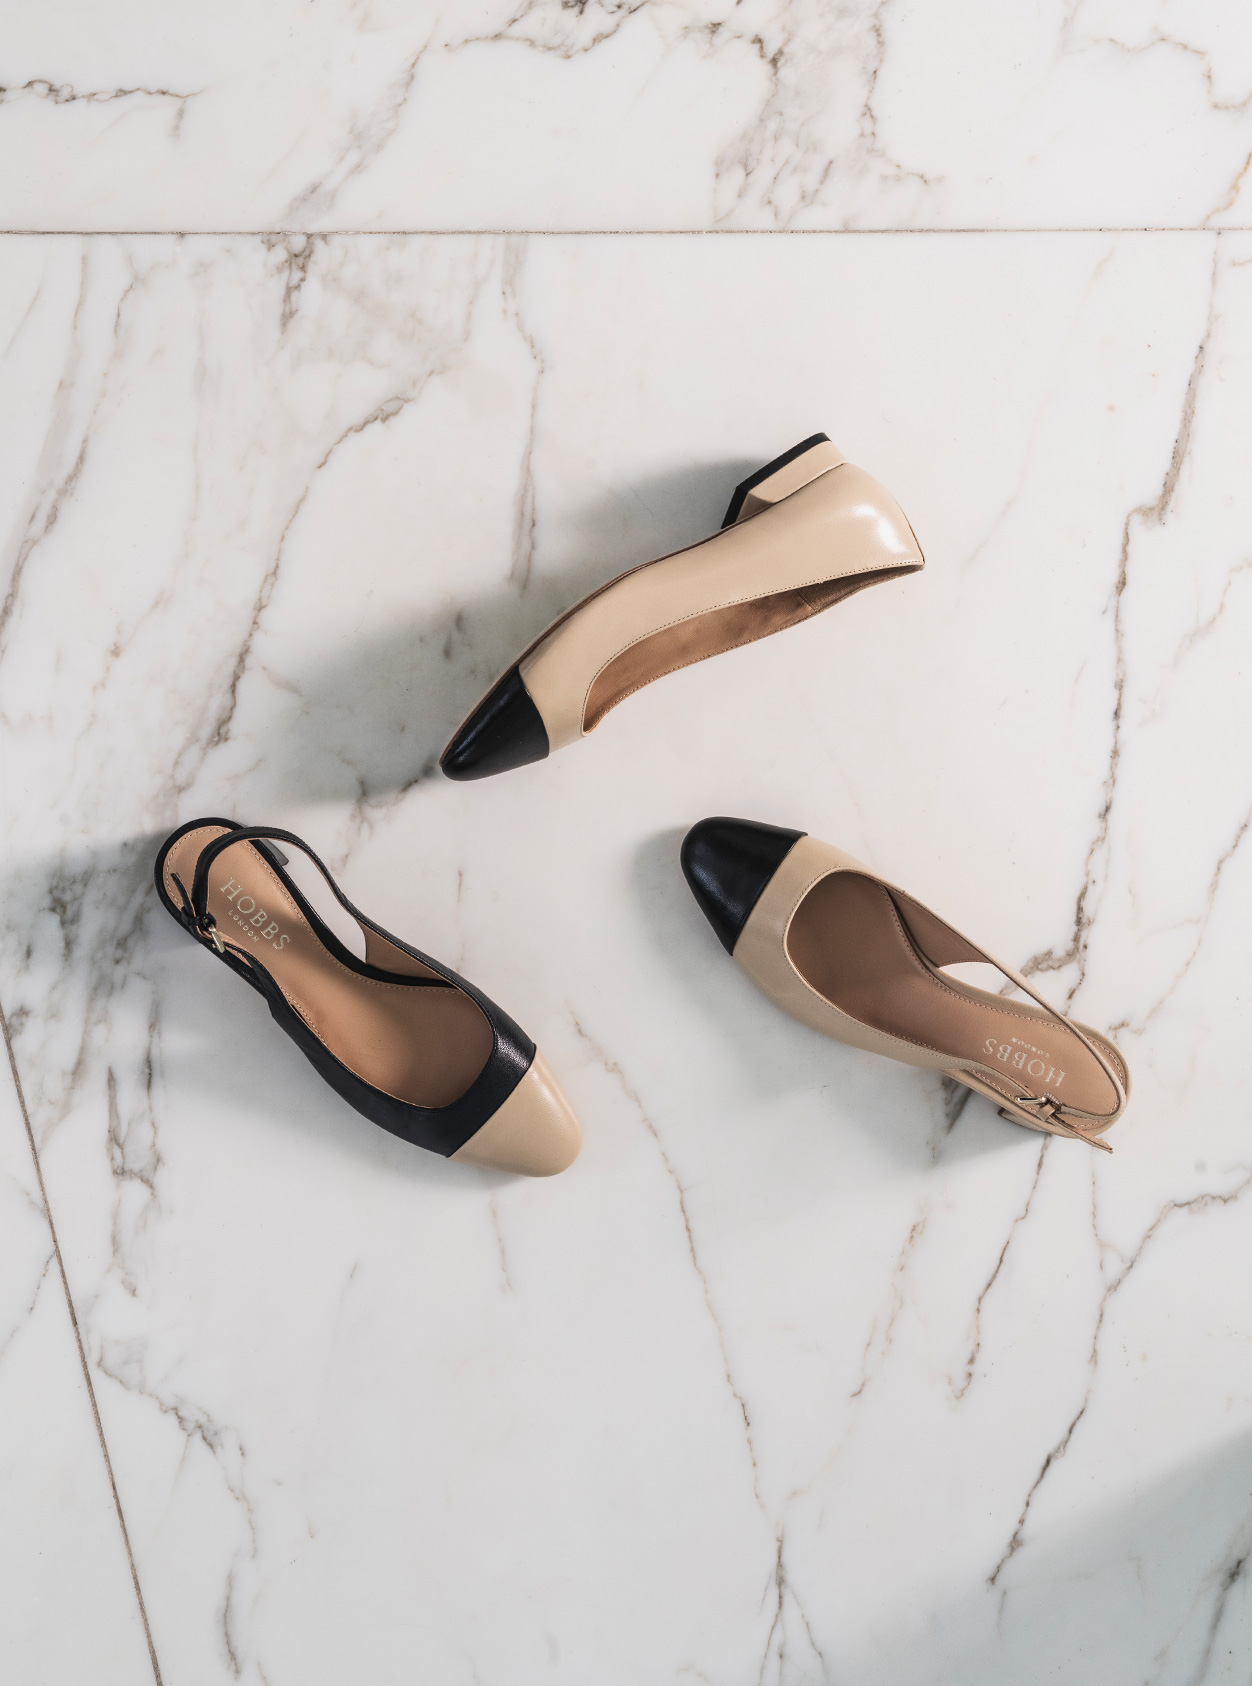 Hobbs women's flat shoes in nude and black.